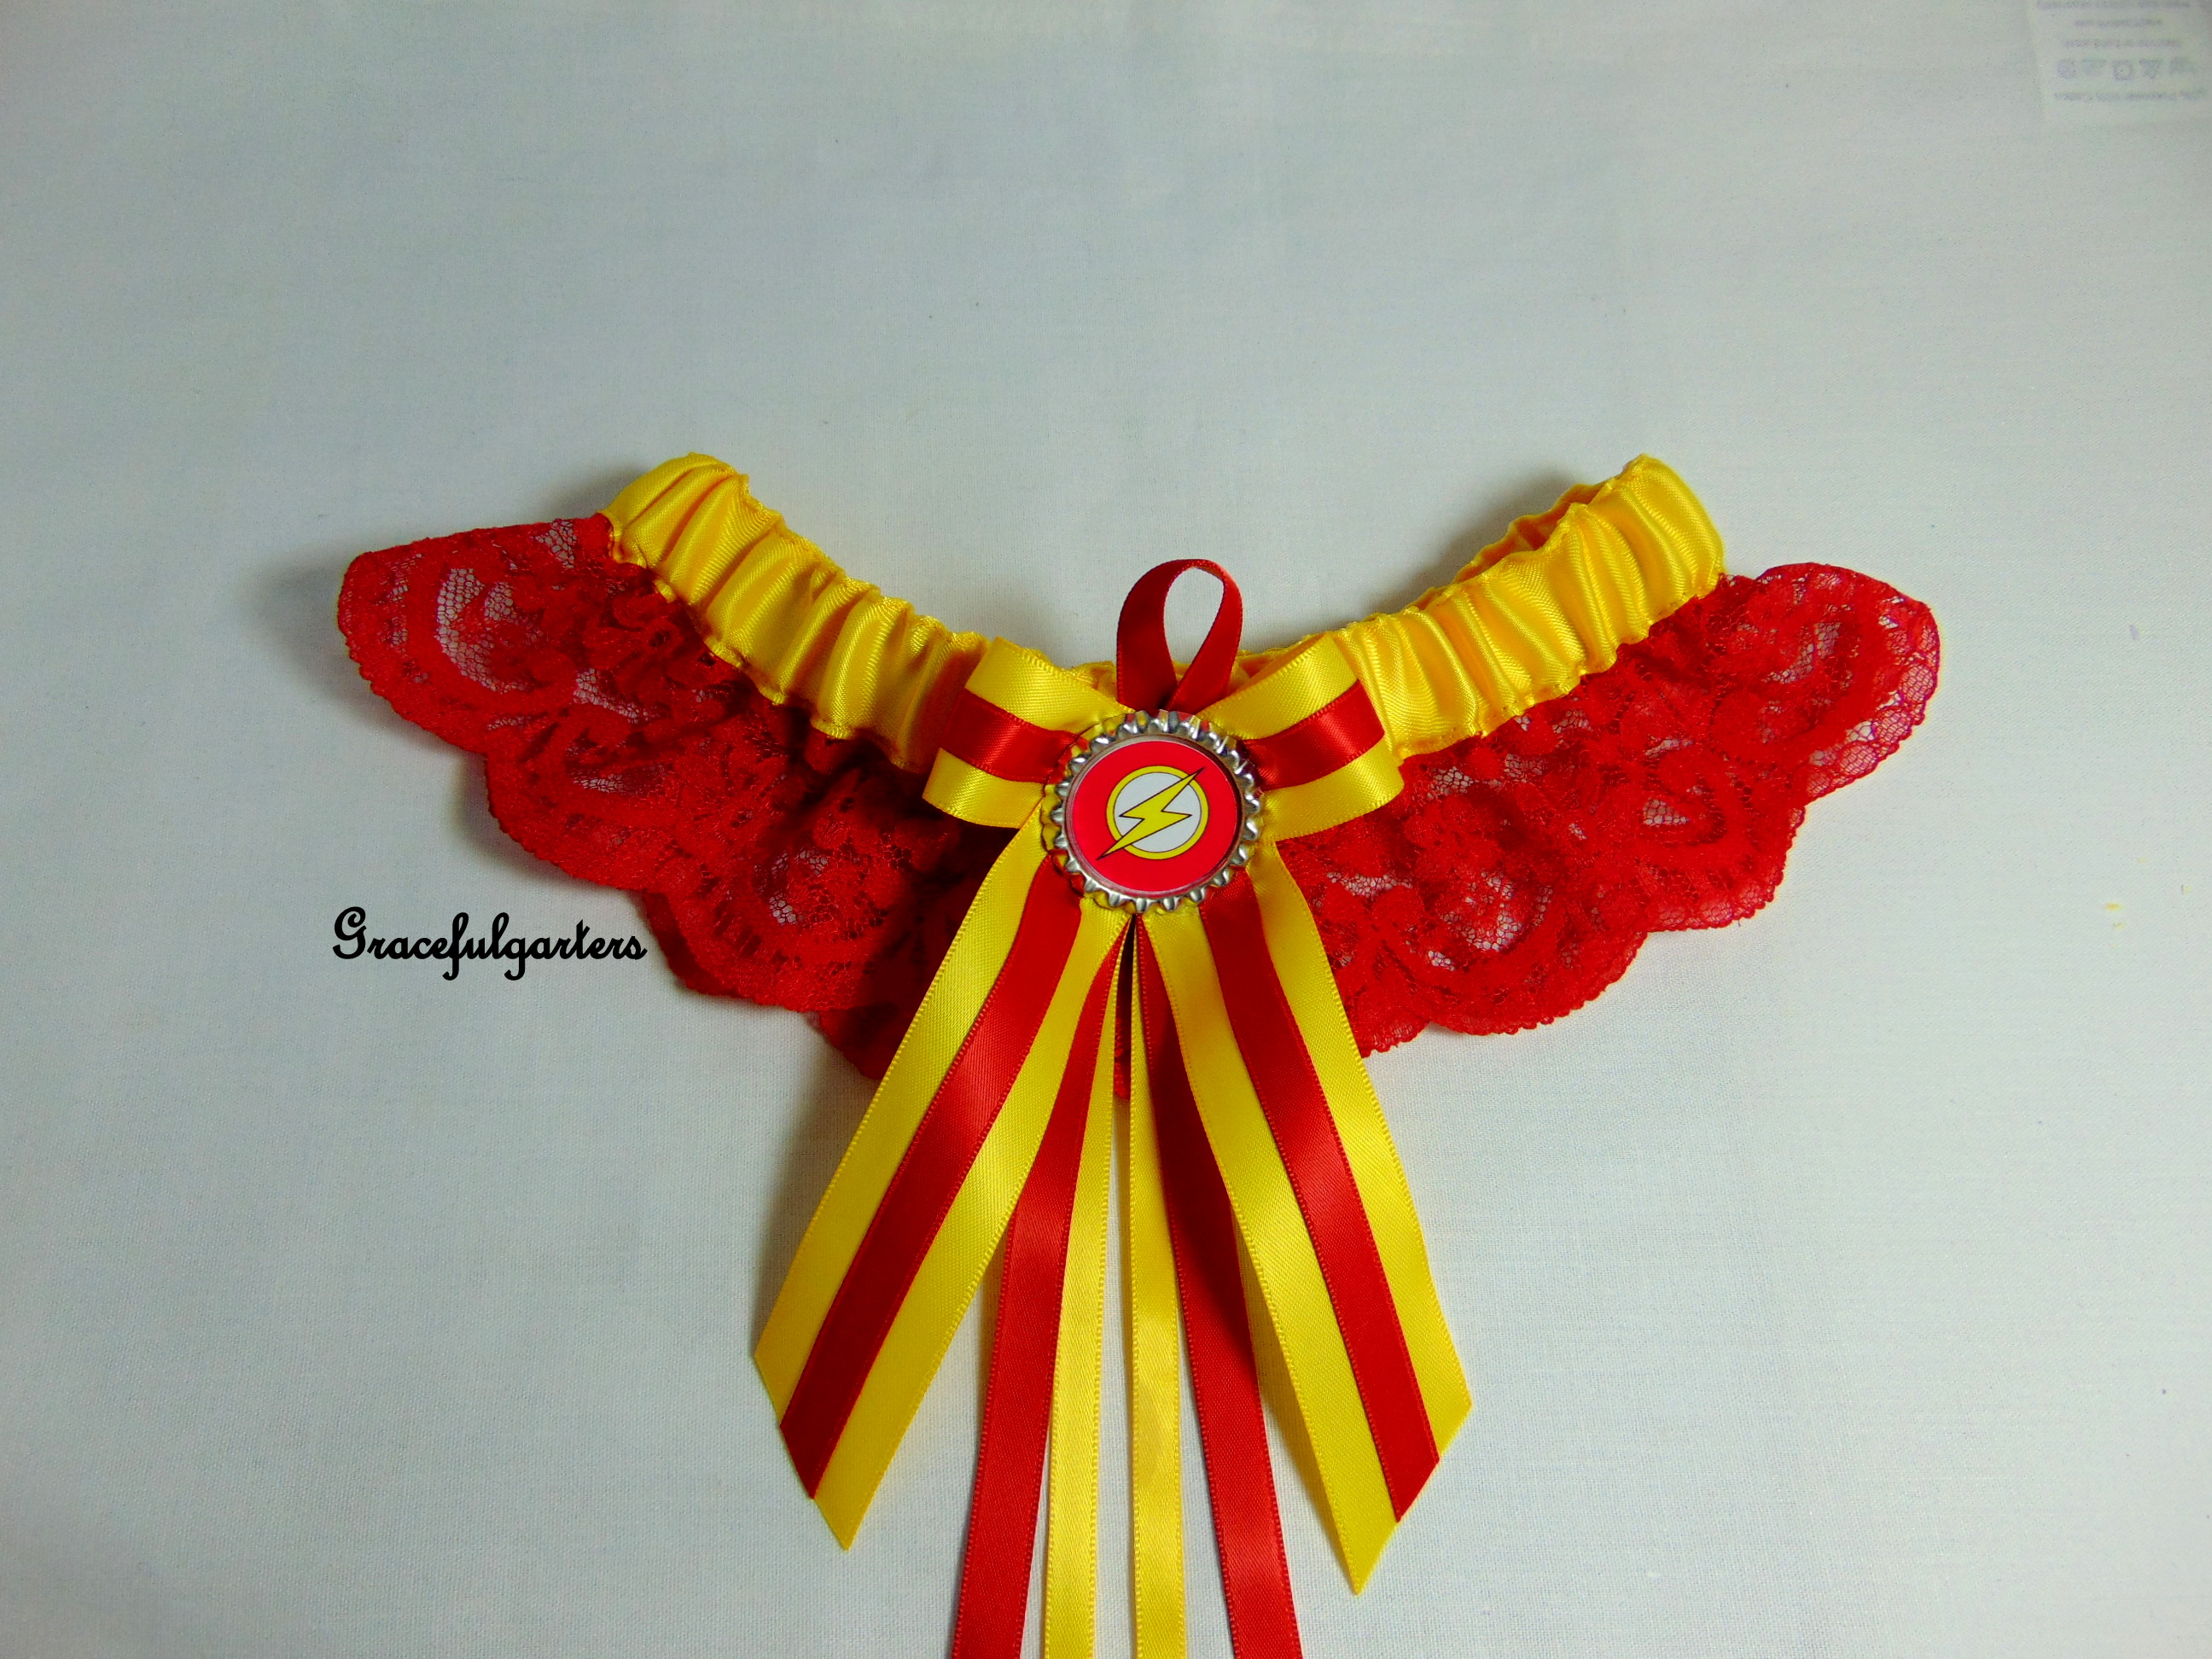 Flash Superhero Lace Bridal Wedding Garter